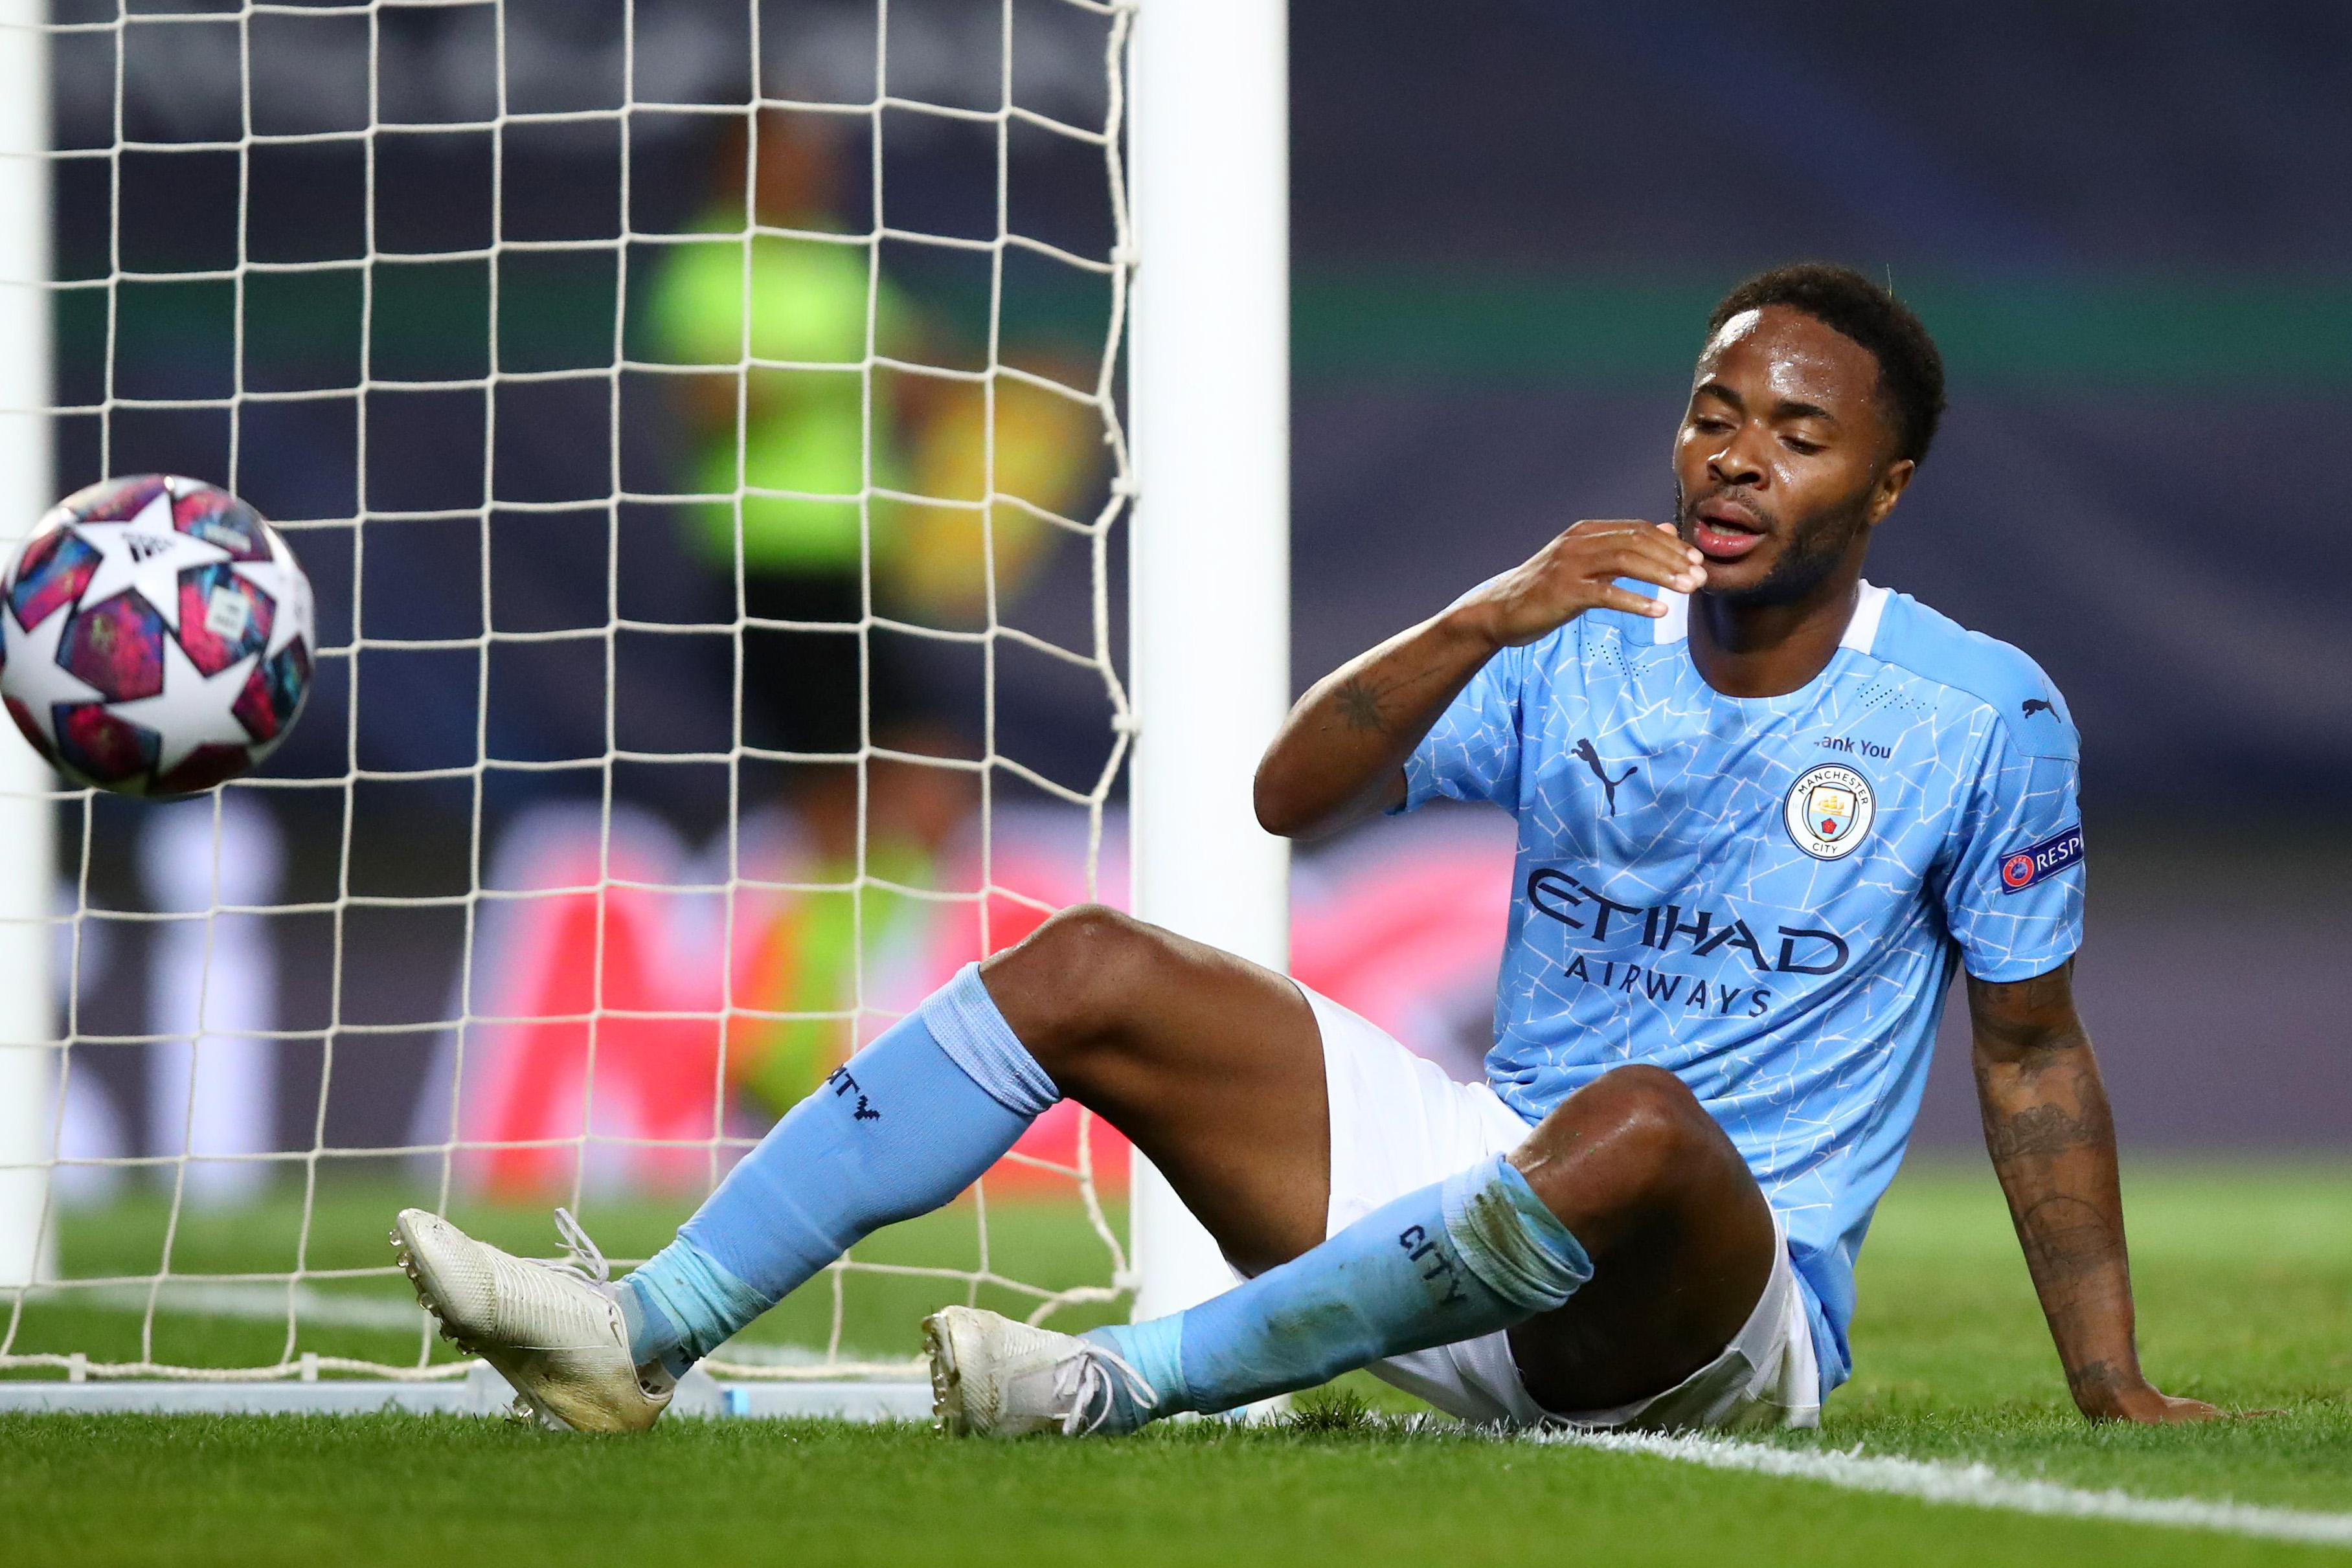 LISBON, PORTUGAL - AUGUST 15: Raheem Sterling of Manchester City looks dejected after a missed chance during the UEFA Champions League Quarter Final match between Manchester City and Lyon at Estadio Jose Alvalade on August 15, 2020 in Lisbon, Portugal. (Photo by Julian Finney - UEFA/UEFA via Getty Images)